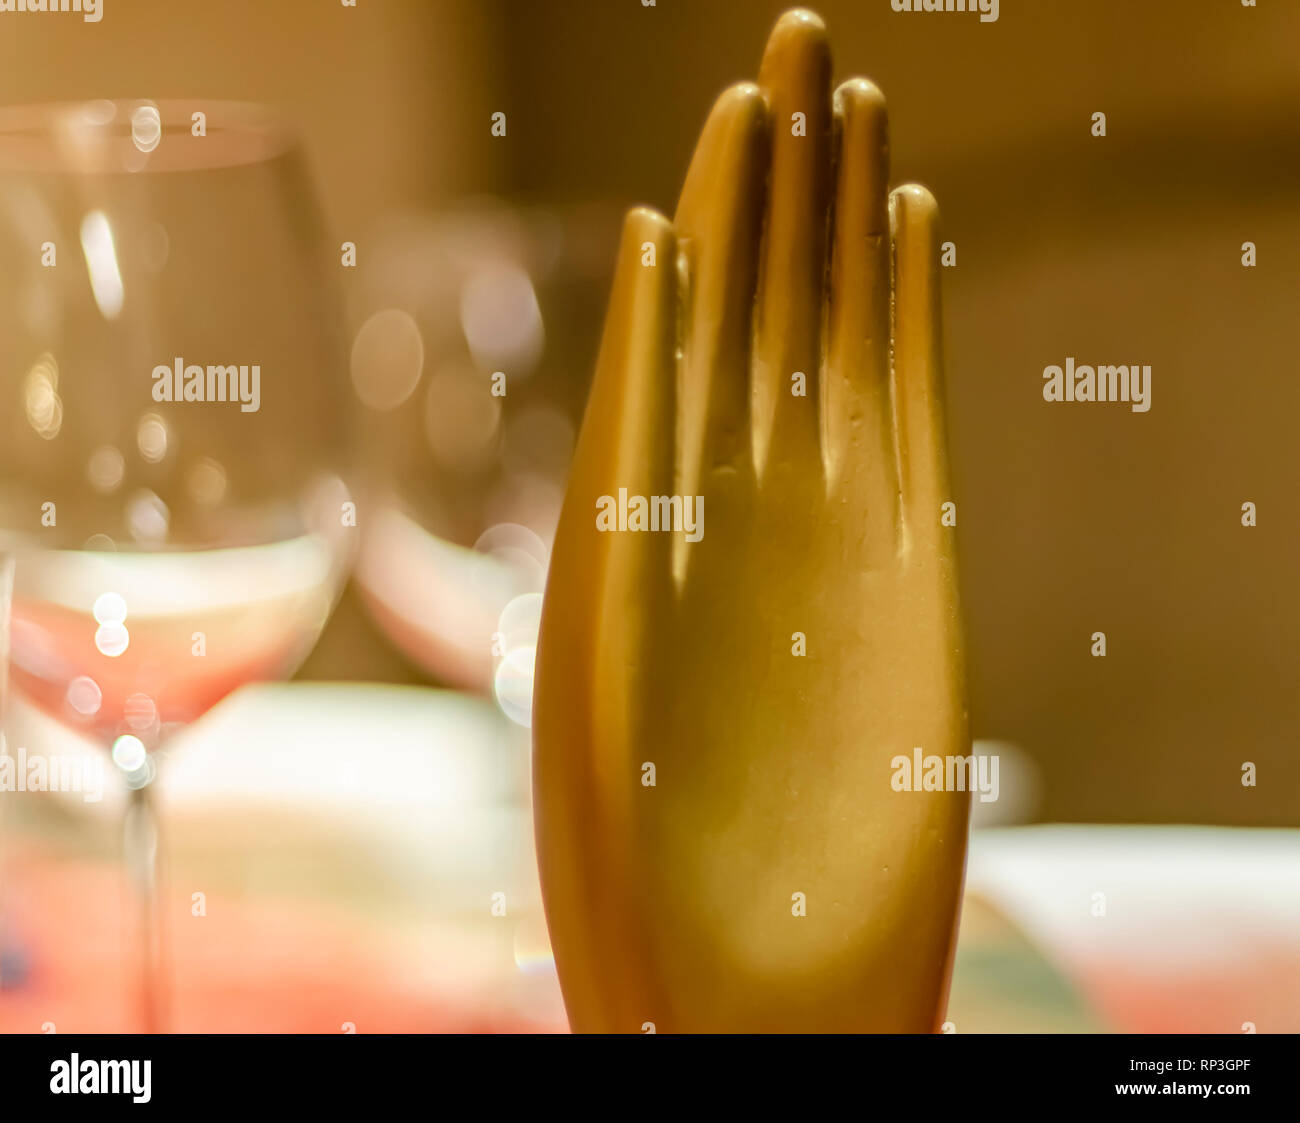 A ceramic hand used as a visual cue to signify that a table in a restaurant is already booked/reserved/taken. Wait! Stop! Warning! Hold! - Stock Image